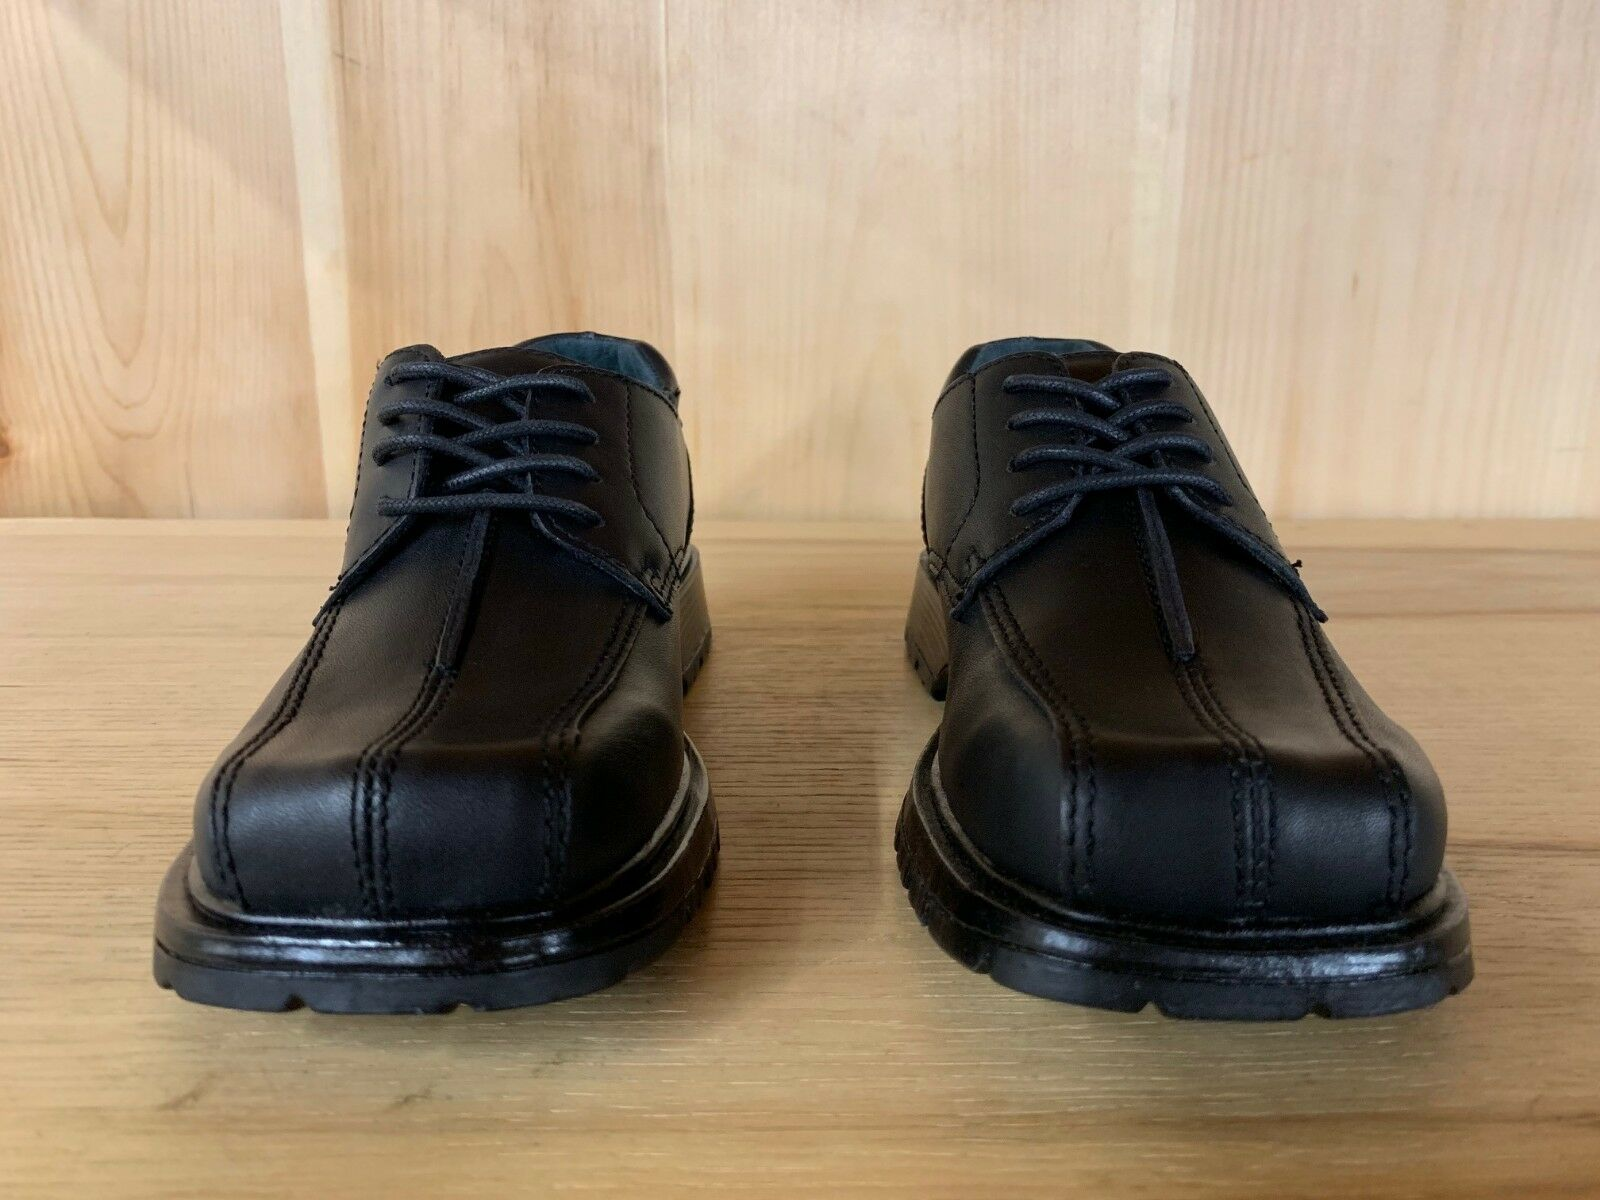 KENNETH COLE REACTION  DRESS SHOES BOOTS BLACK KIDS YOUTH SIZE 1-2 Y  F89067